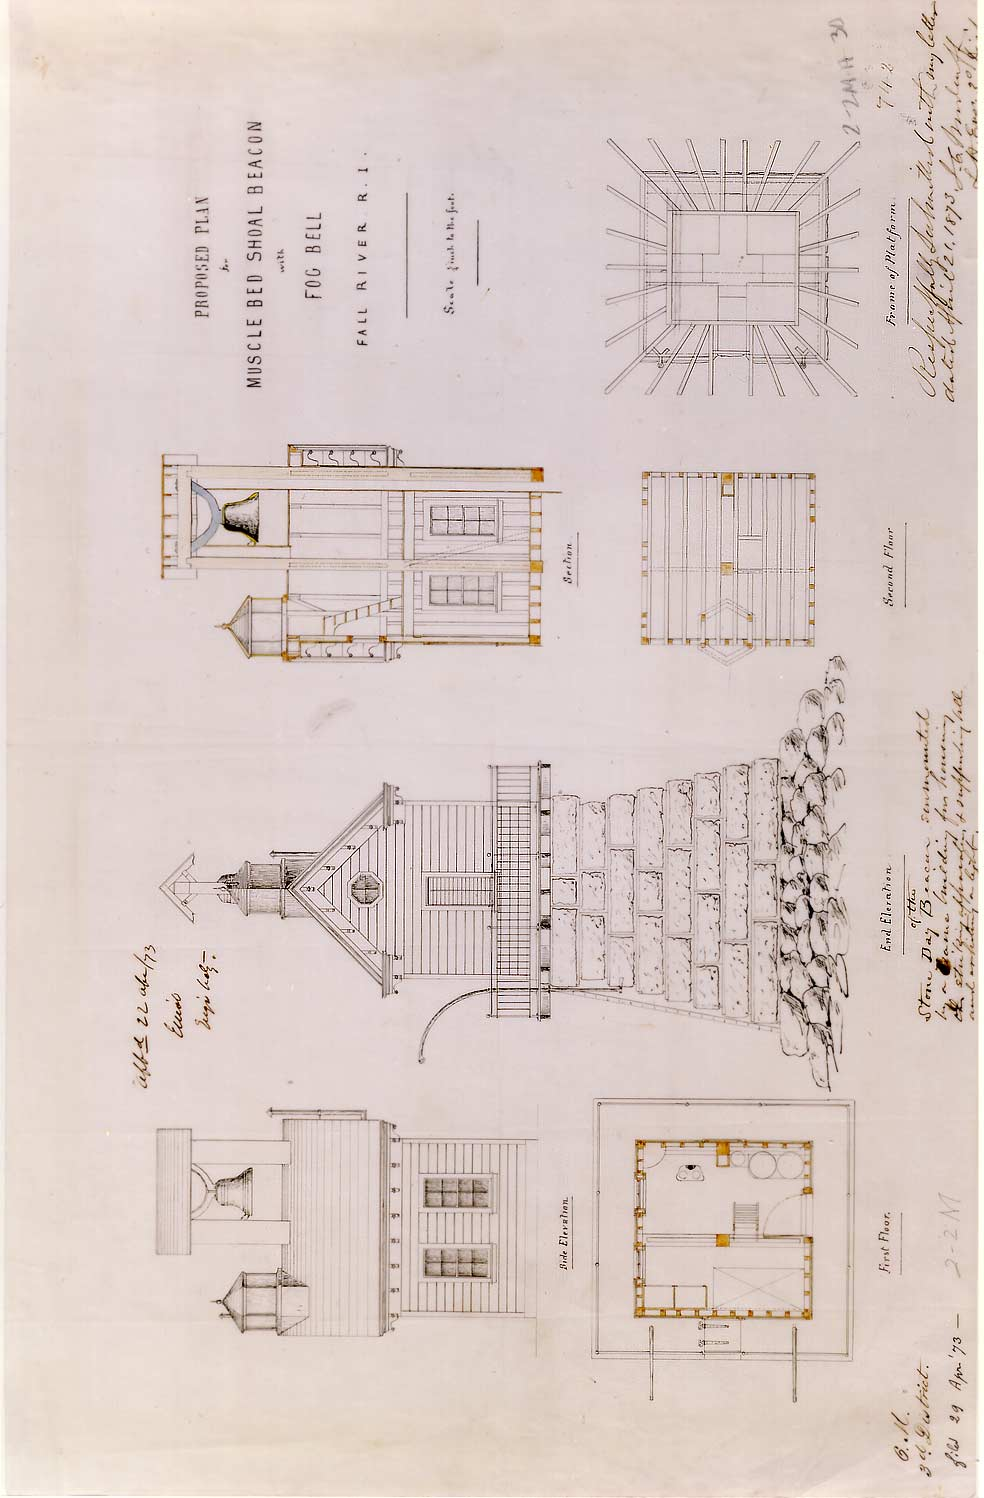 Plan for Musselbed Shoals Lighthouse